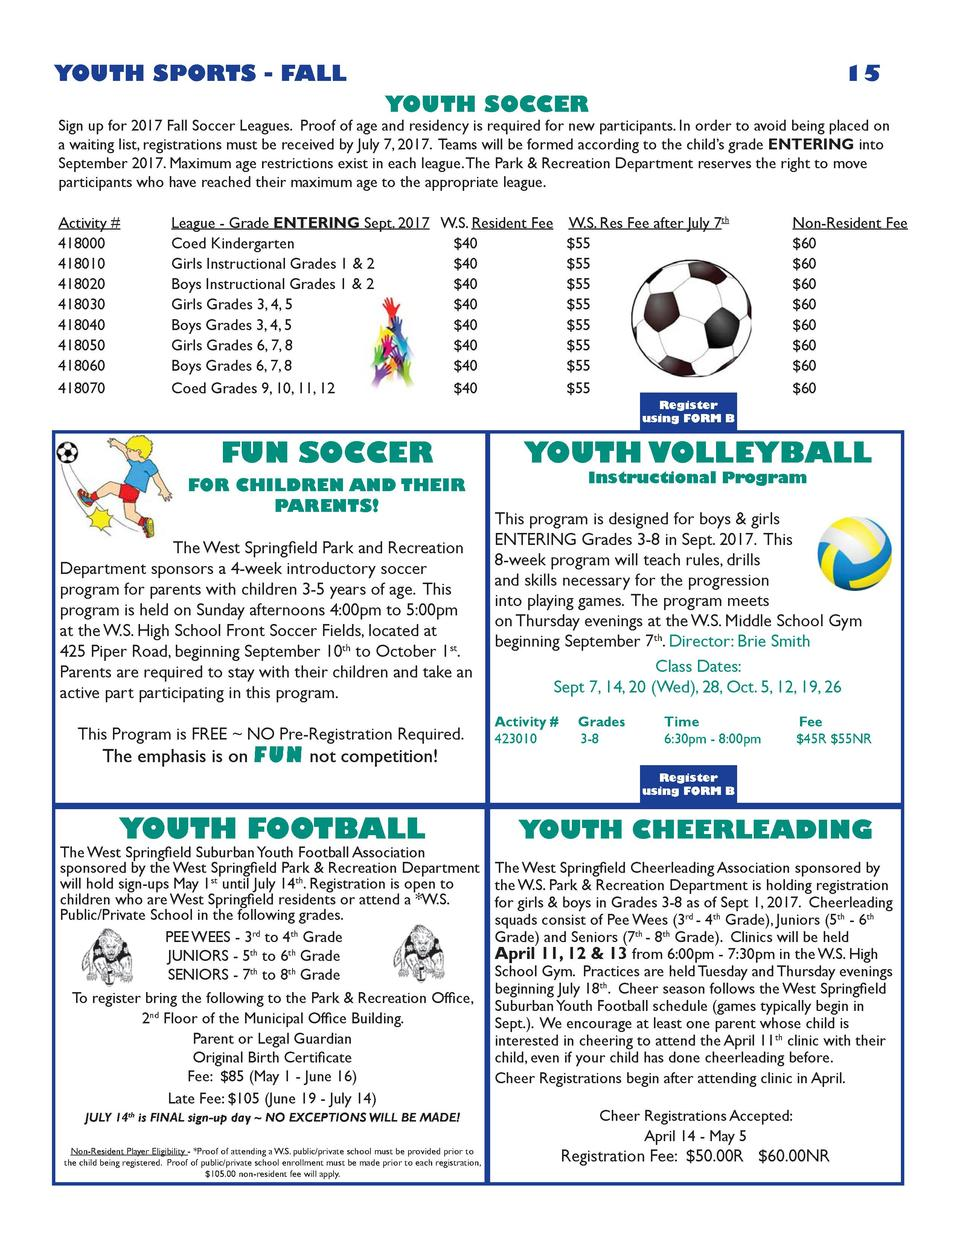 YOUTH SPORTS - FALL  15 YOUTH SOCCER  Sign up for 2017 Fall Soccer Leagues. Proof of age and residency is required for new...